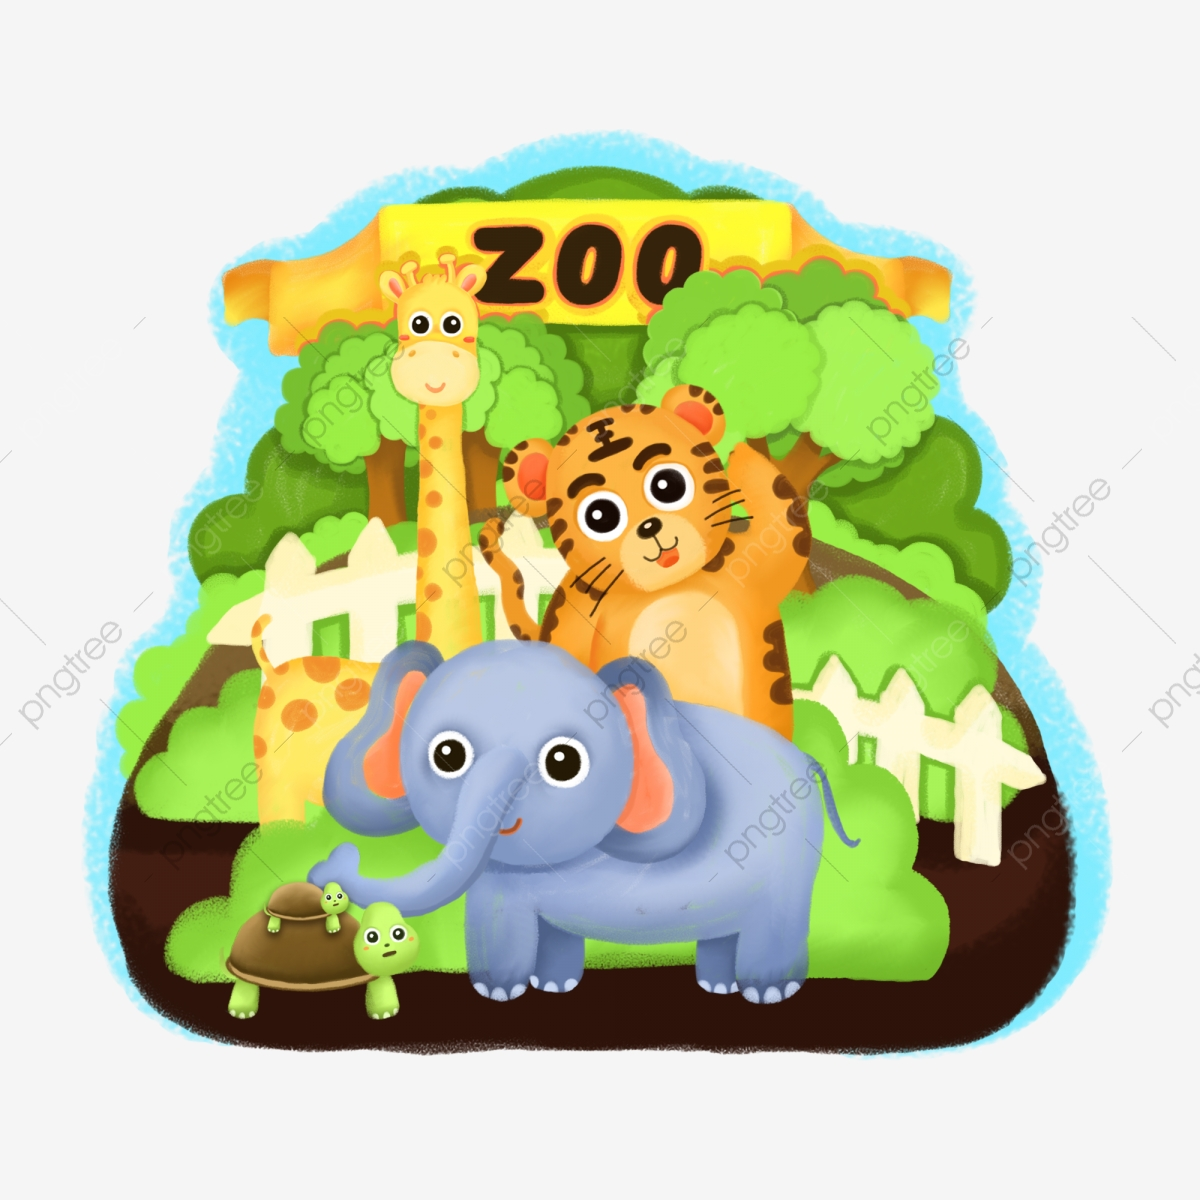 Travel Zoo Play Elephant Tortoise Tiger Giraffe Trees Cartoon Zoo Clipart Zoo Animal Png Transparent Clipart Image And Psd File For Free Download Wall sticker cute animals cartoon light switch decal for window home decor ji. https pngtree com freepng travel zoo play elephant tortoise tiger giraffe trees cartoon 4058026 html